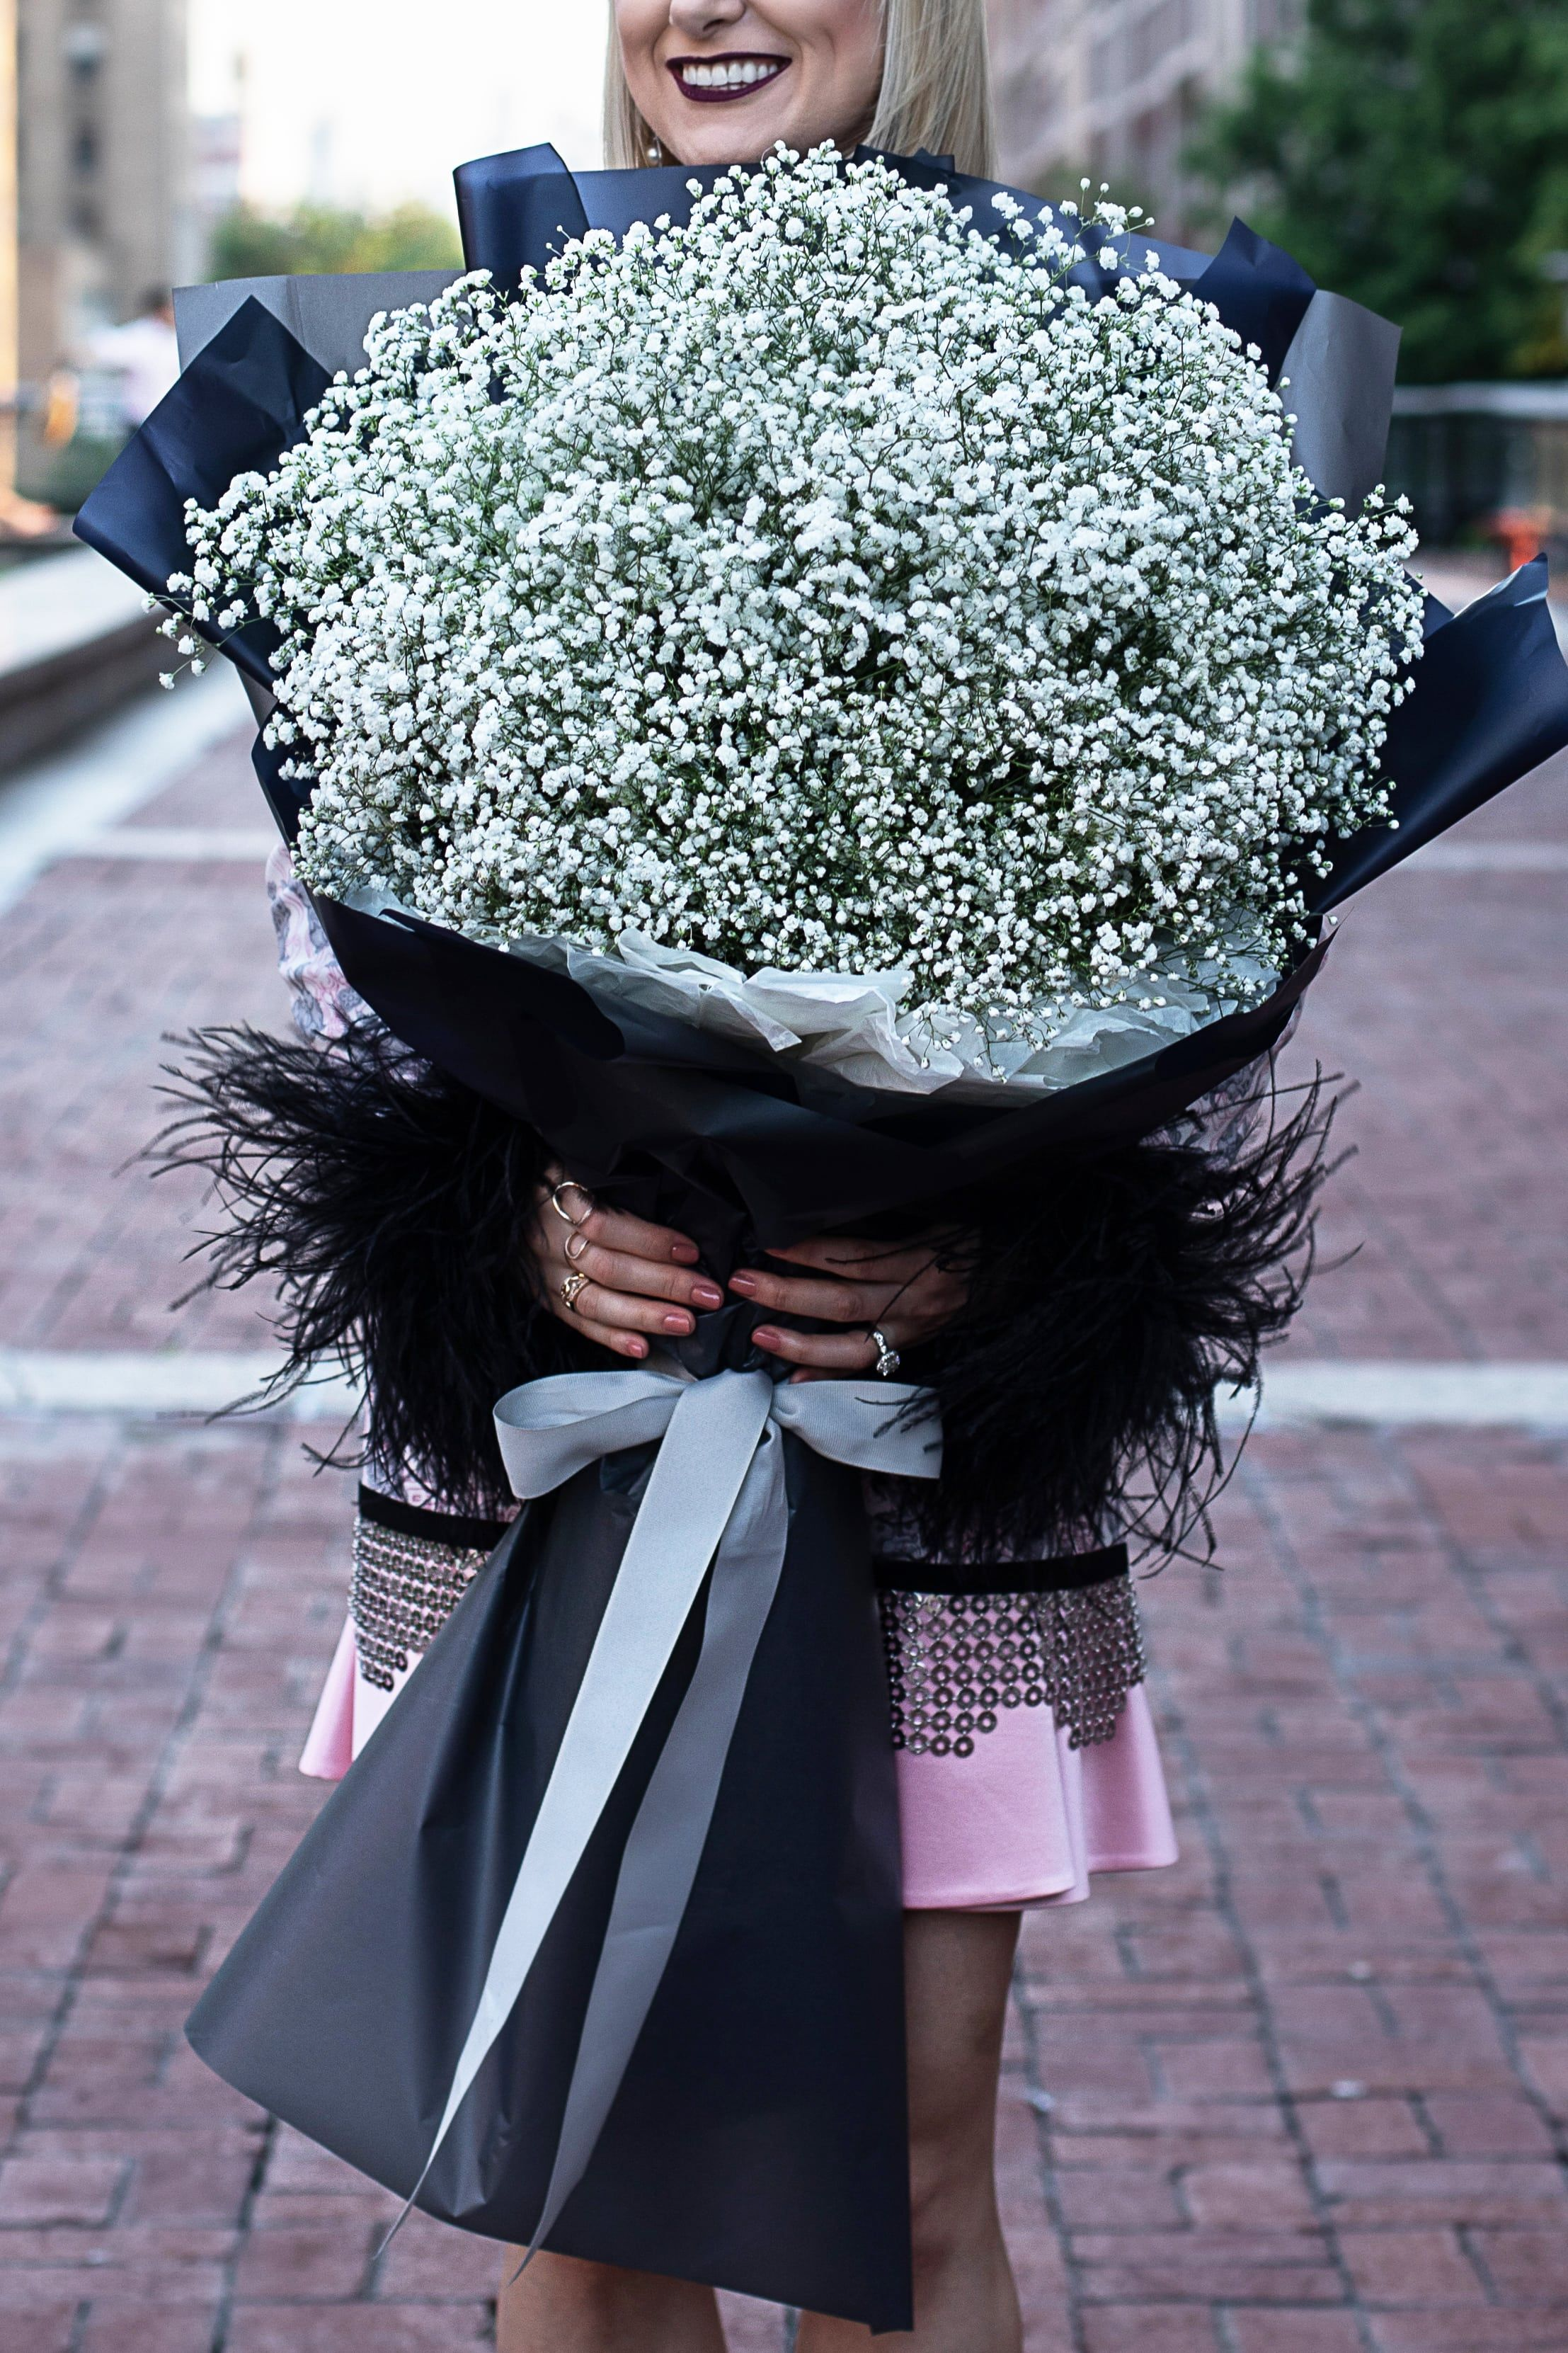 Big Baby Breath Bouquet In The Black Korean Waterproof Wrapping Paper Wmf Events Bouquet Weddingbrooklyn Wed Babys Breath Bouquet Bouquet Wrap Babys Breath